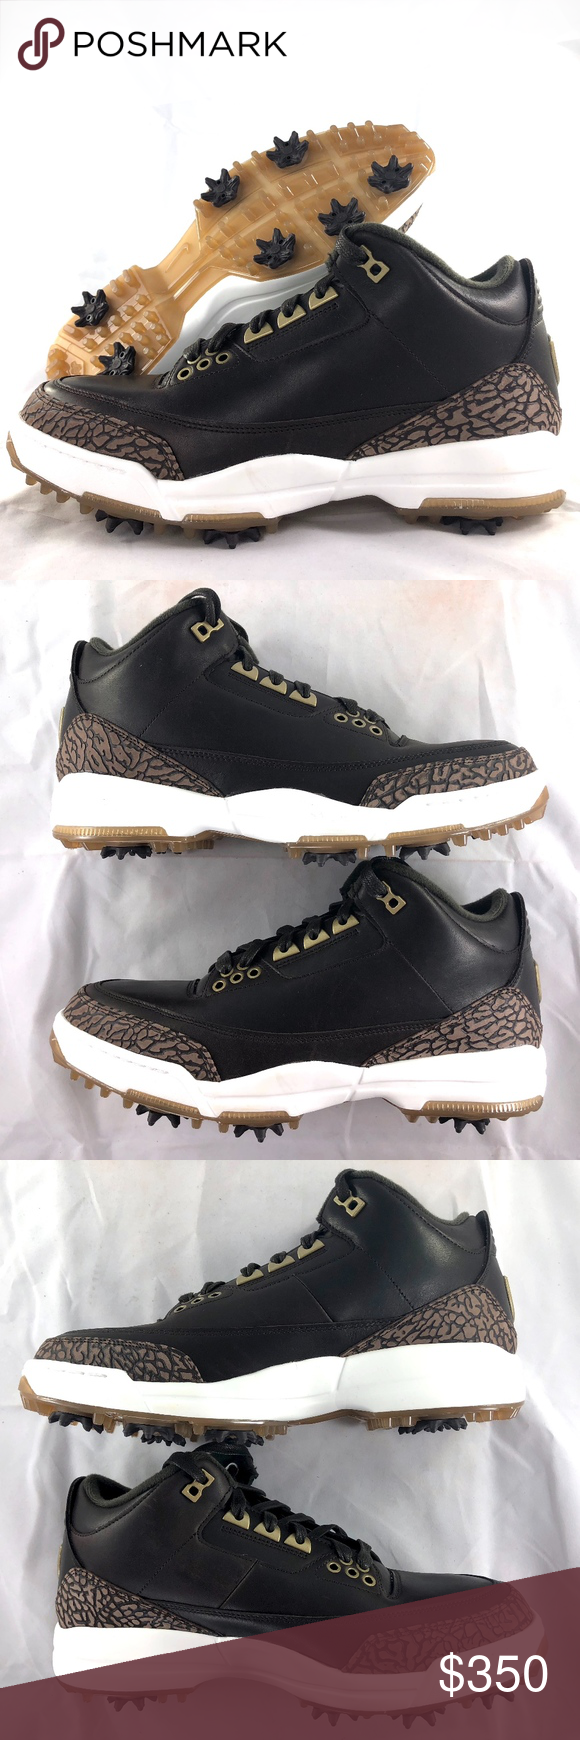 5055fbf773ede3 Nike Air Jordan 3 Golf Premium Brown White Shoes Nike Air Jordan 3 Golf PRM  Premium